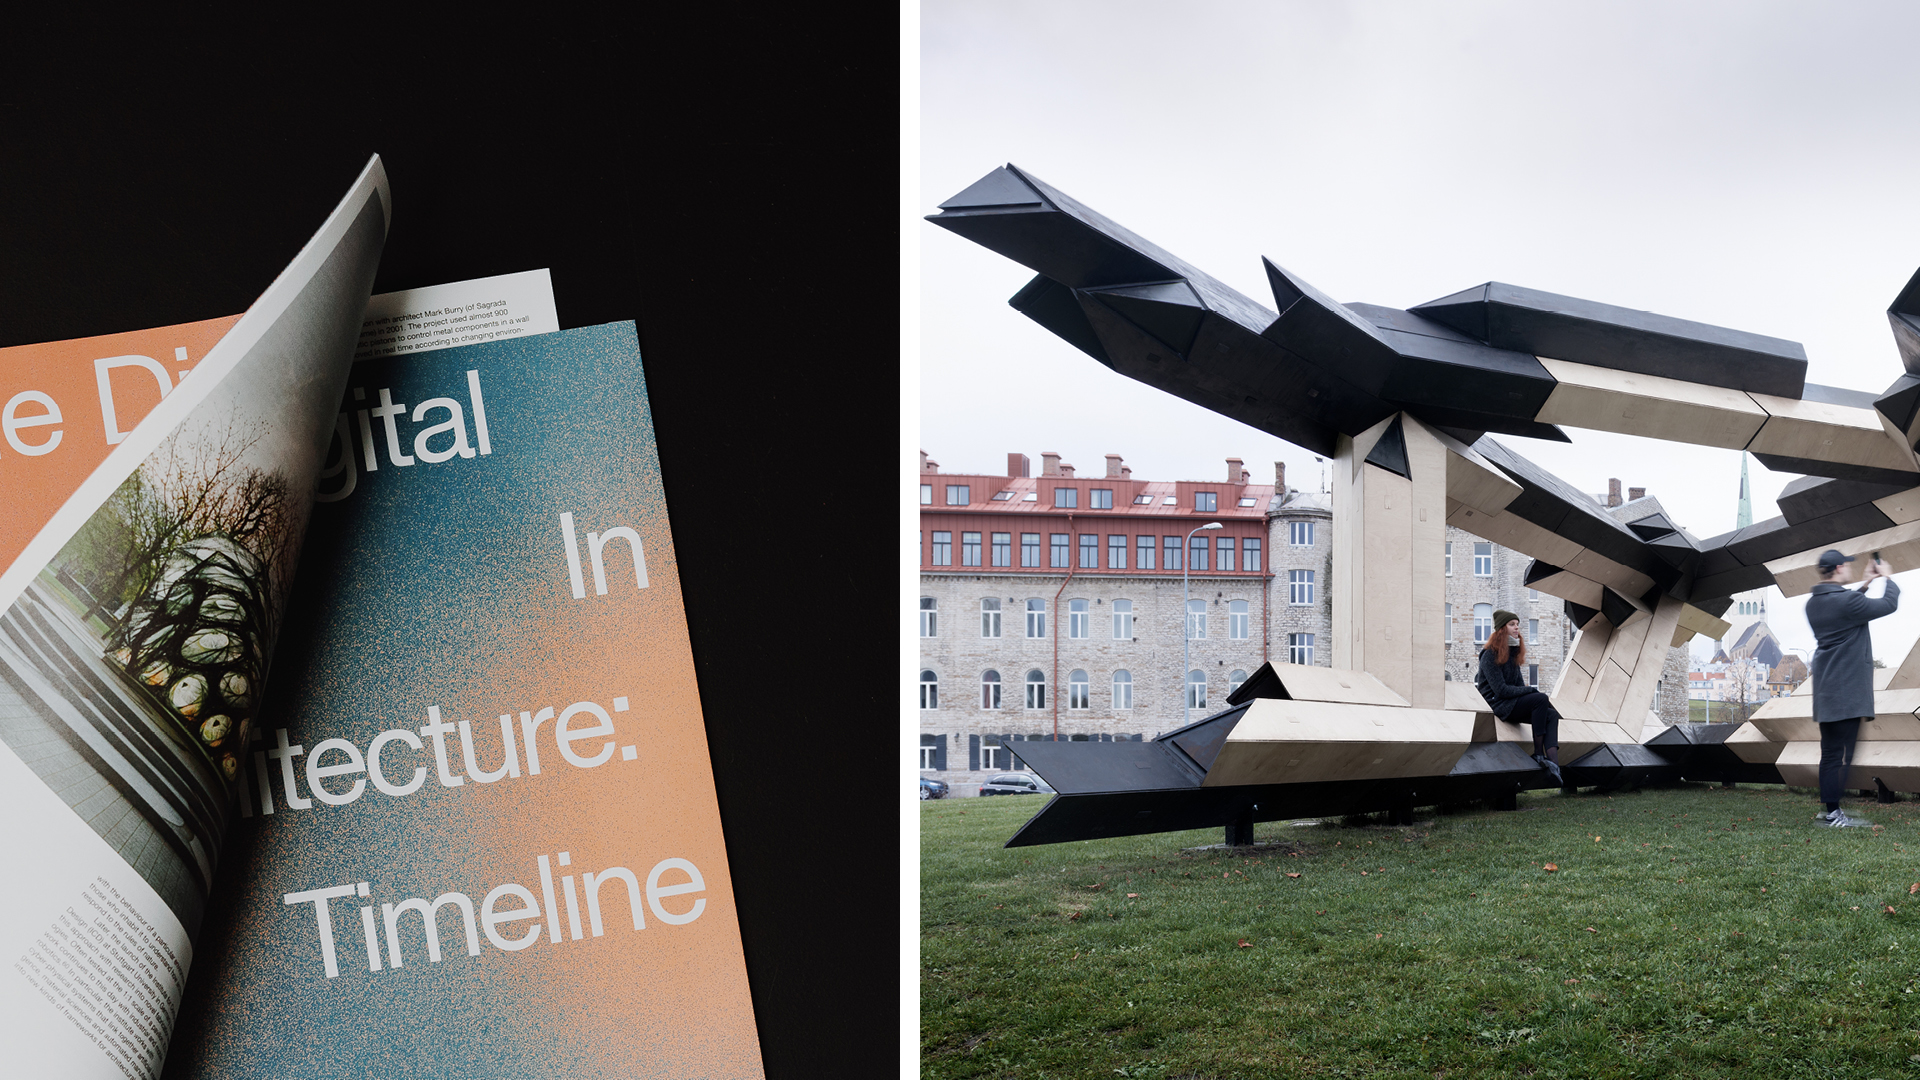 "'The Digital in Architecture' authored by Mollie Claypool; Giles Retsin Architecture, ""Tallinn Architecture Biennale Pavilion"", 2017 